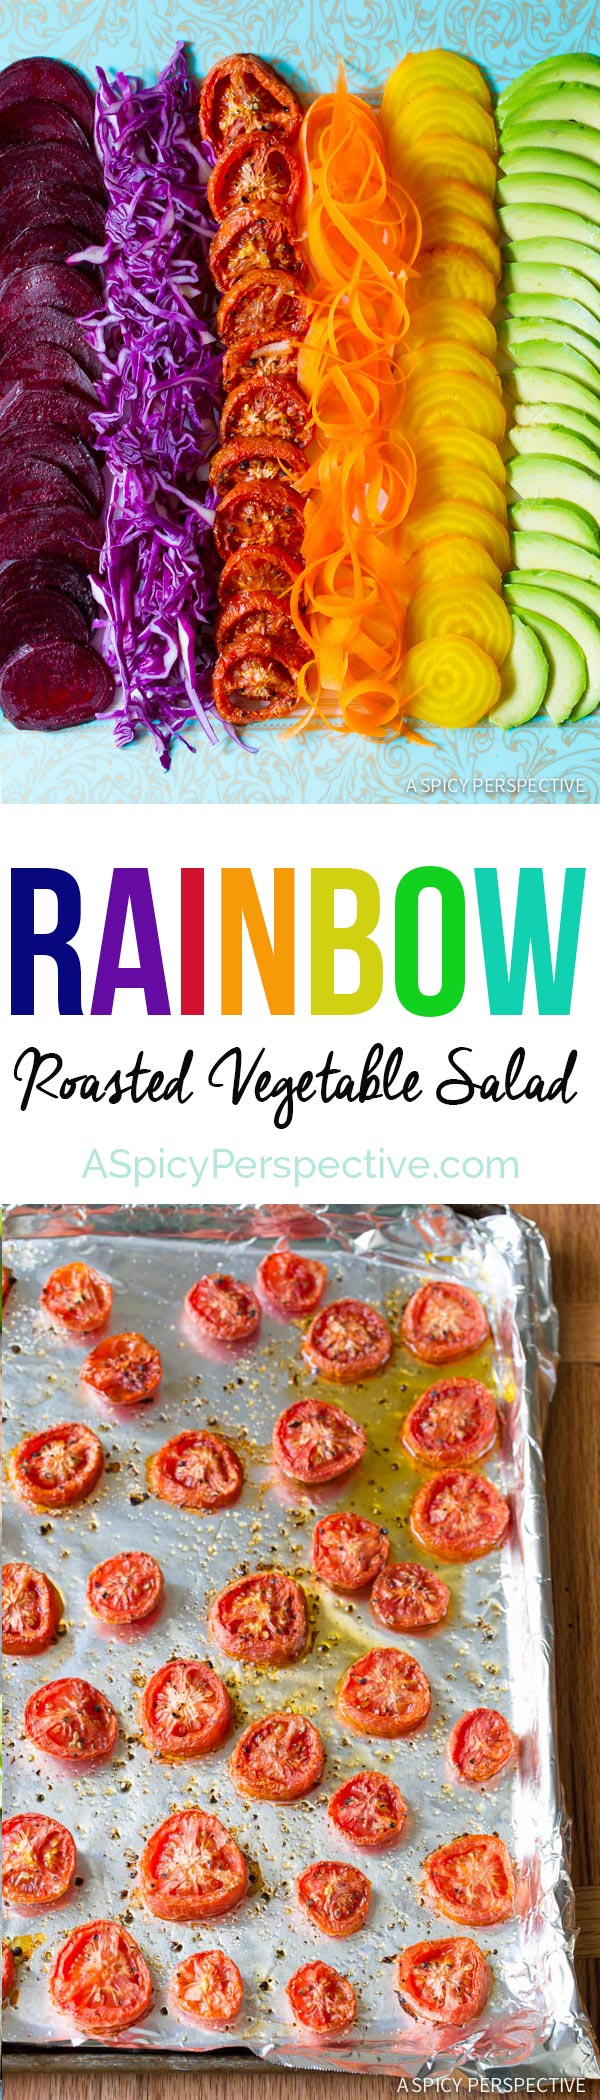 RAINBOW Roasted Vegetable Salad with Fresh and Sweet Roasted Veggies topped with Pesto Vinaigrette!